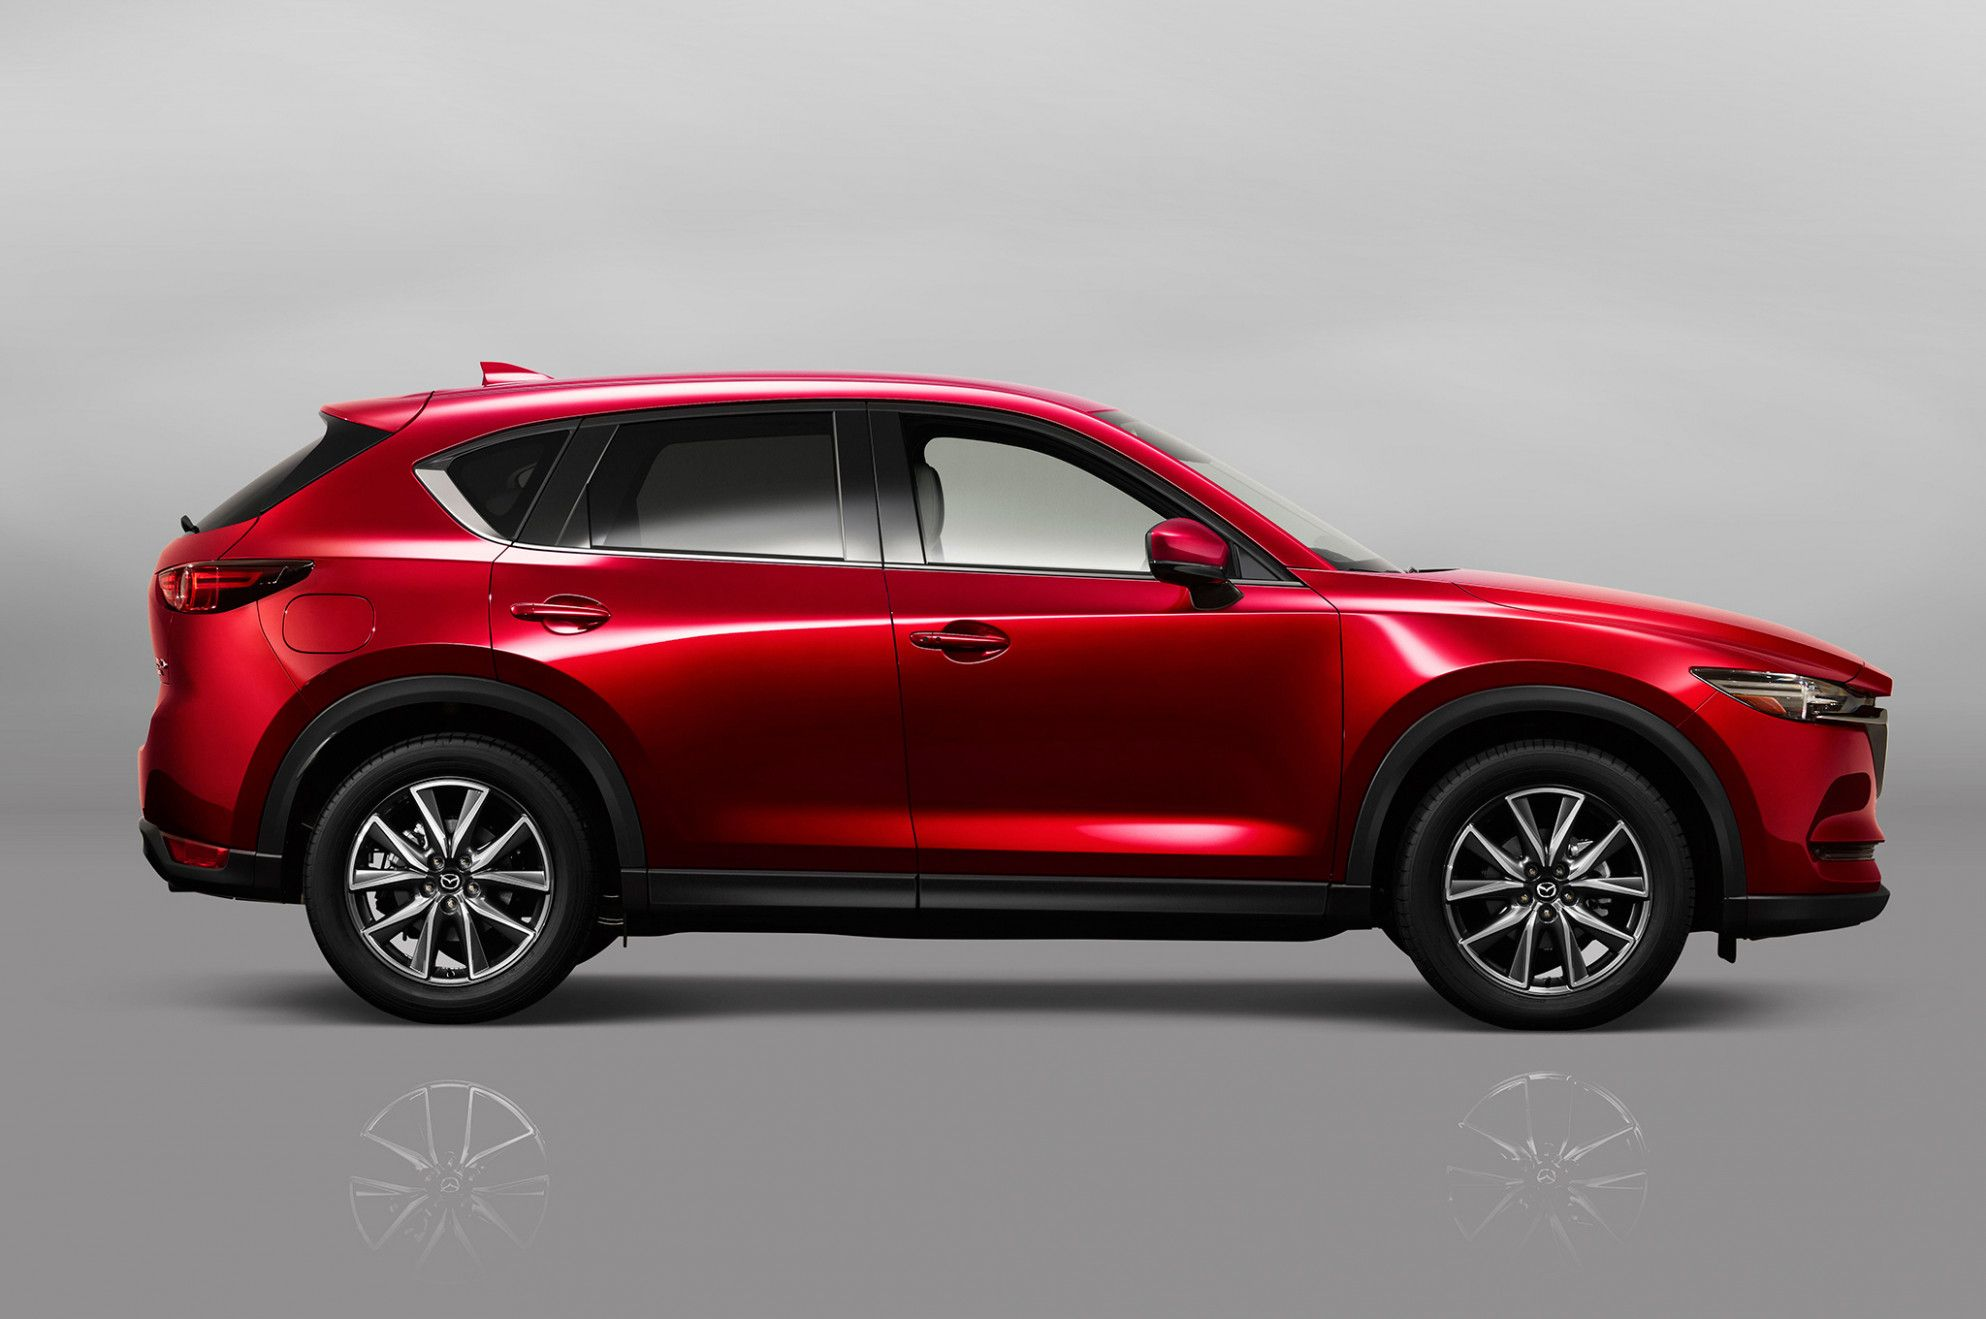 2021 Mazda Cx 5 Exterior And Inside In 2020 Mazda Cx5 Mazda Mazda Cars